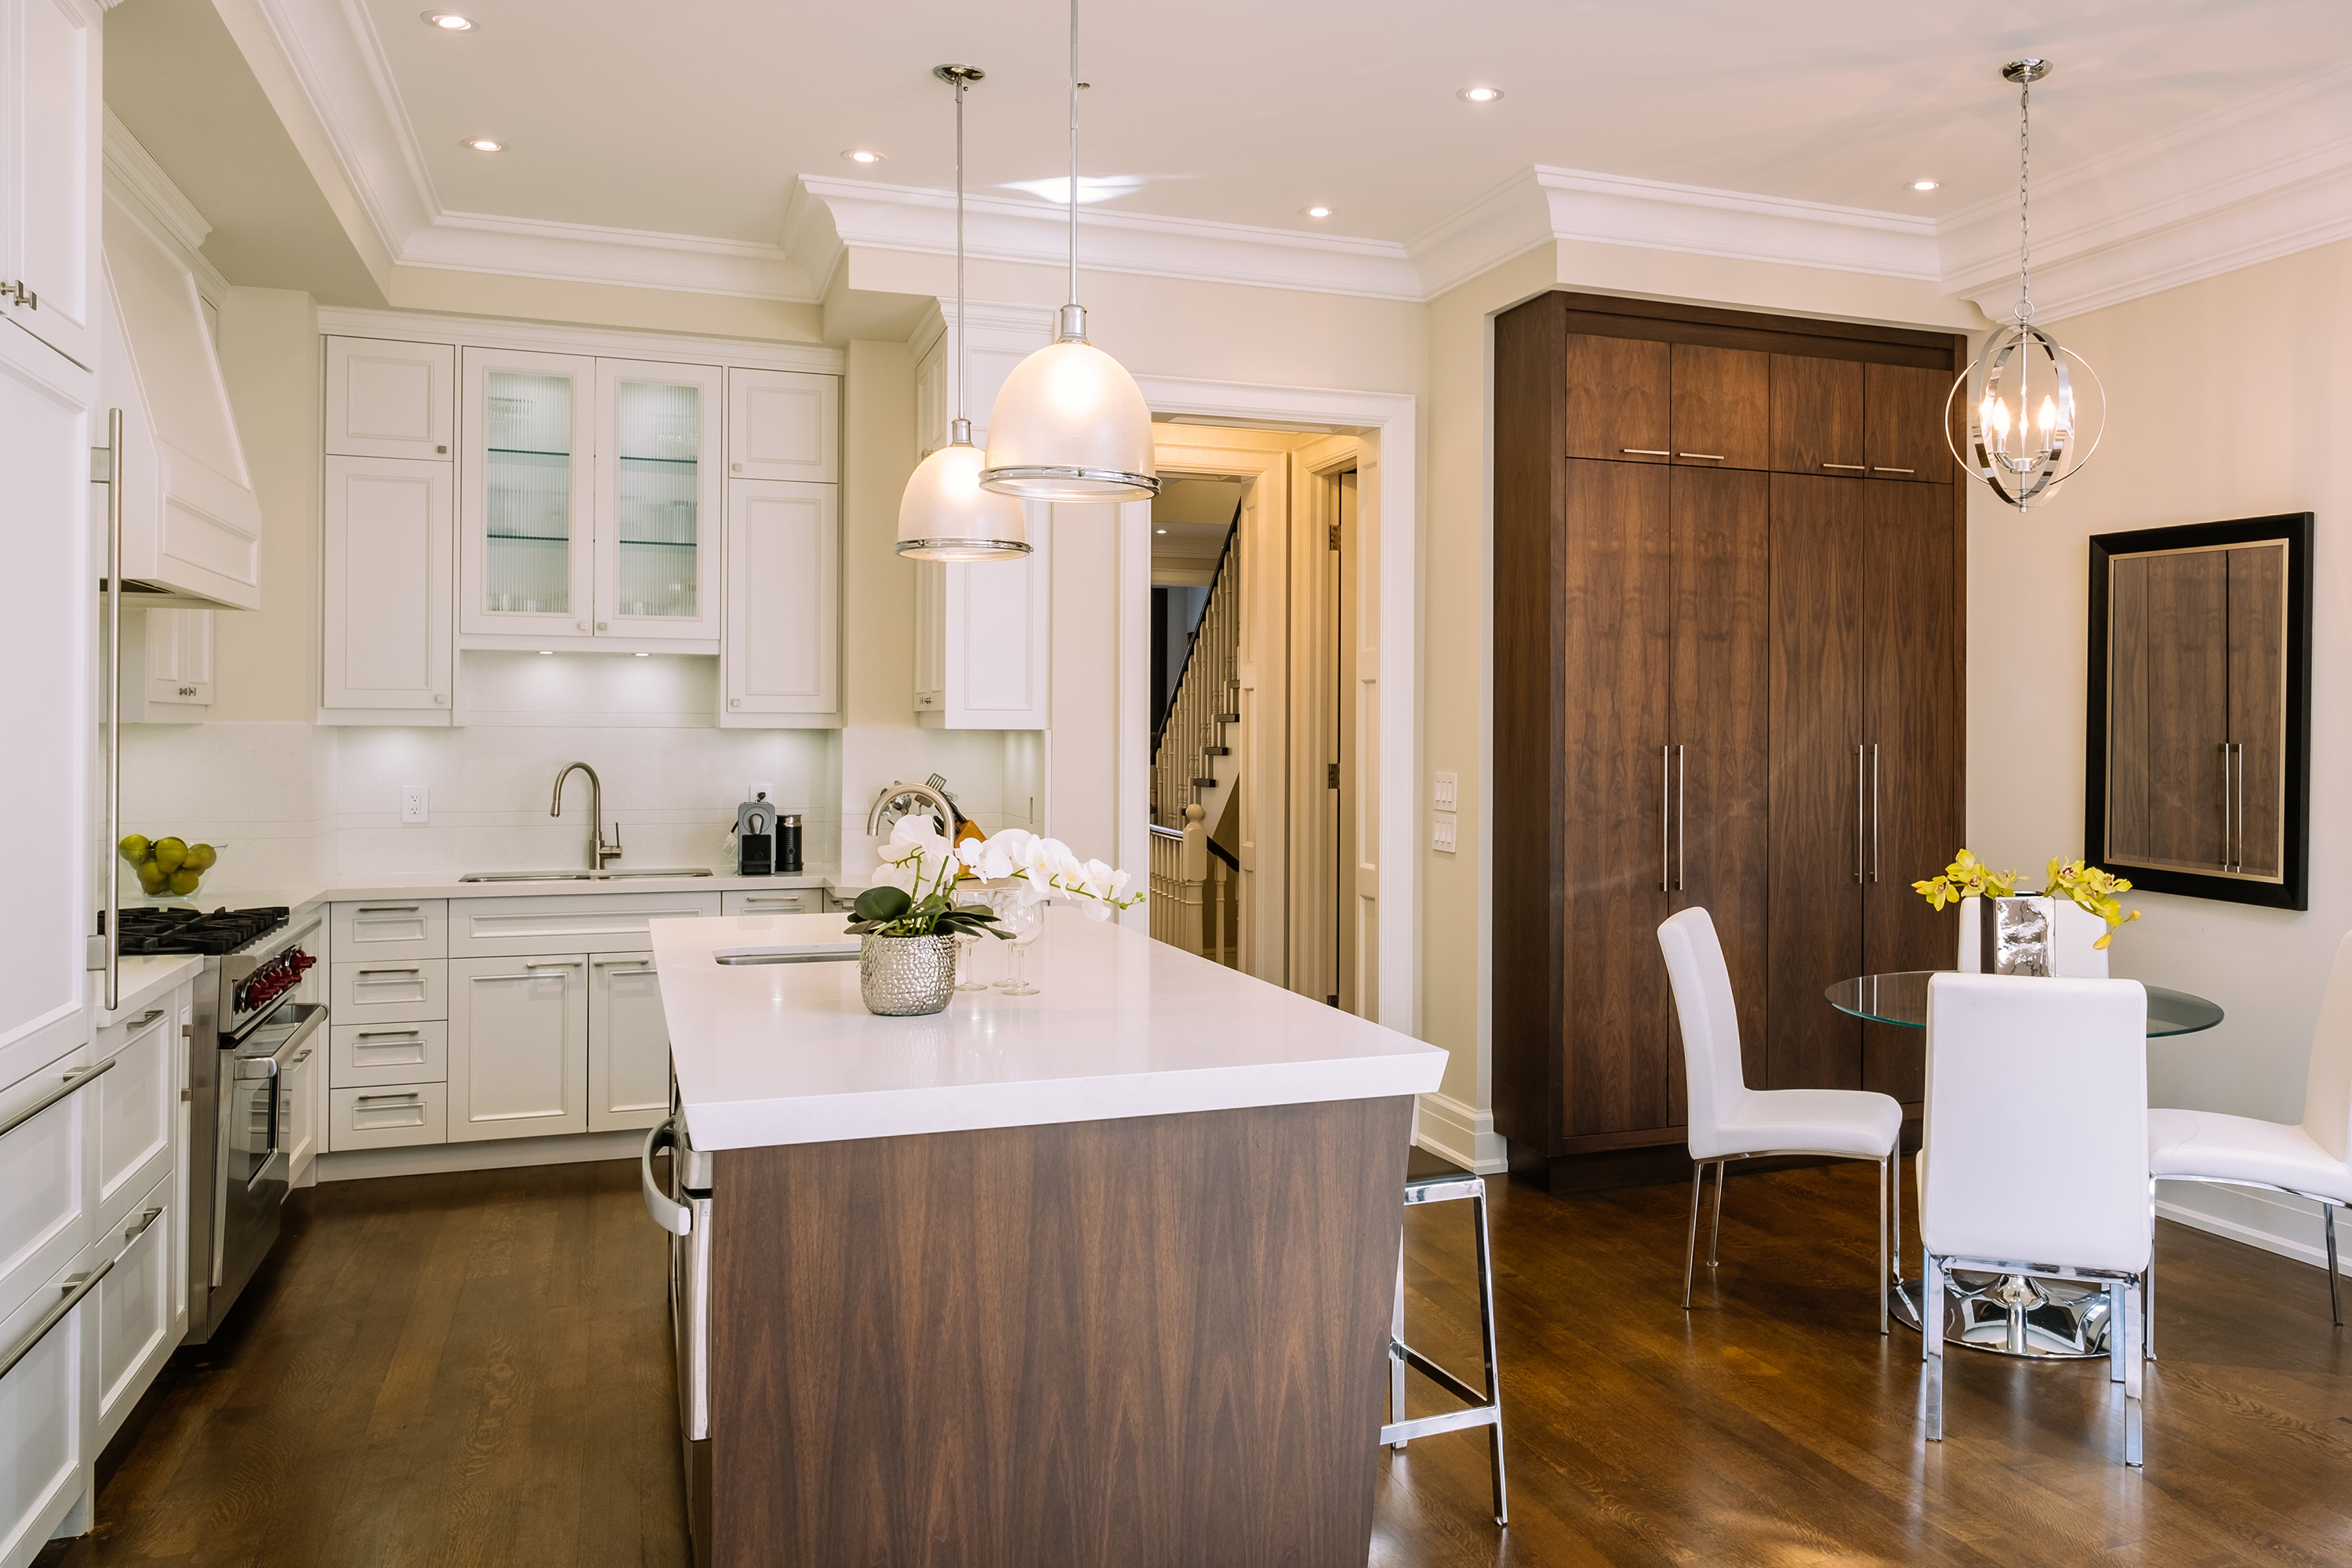 Open concept kitchen with breakfast area.